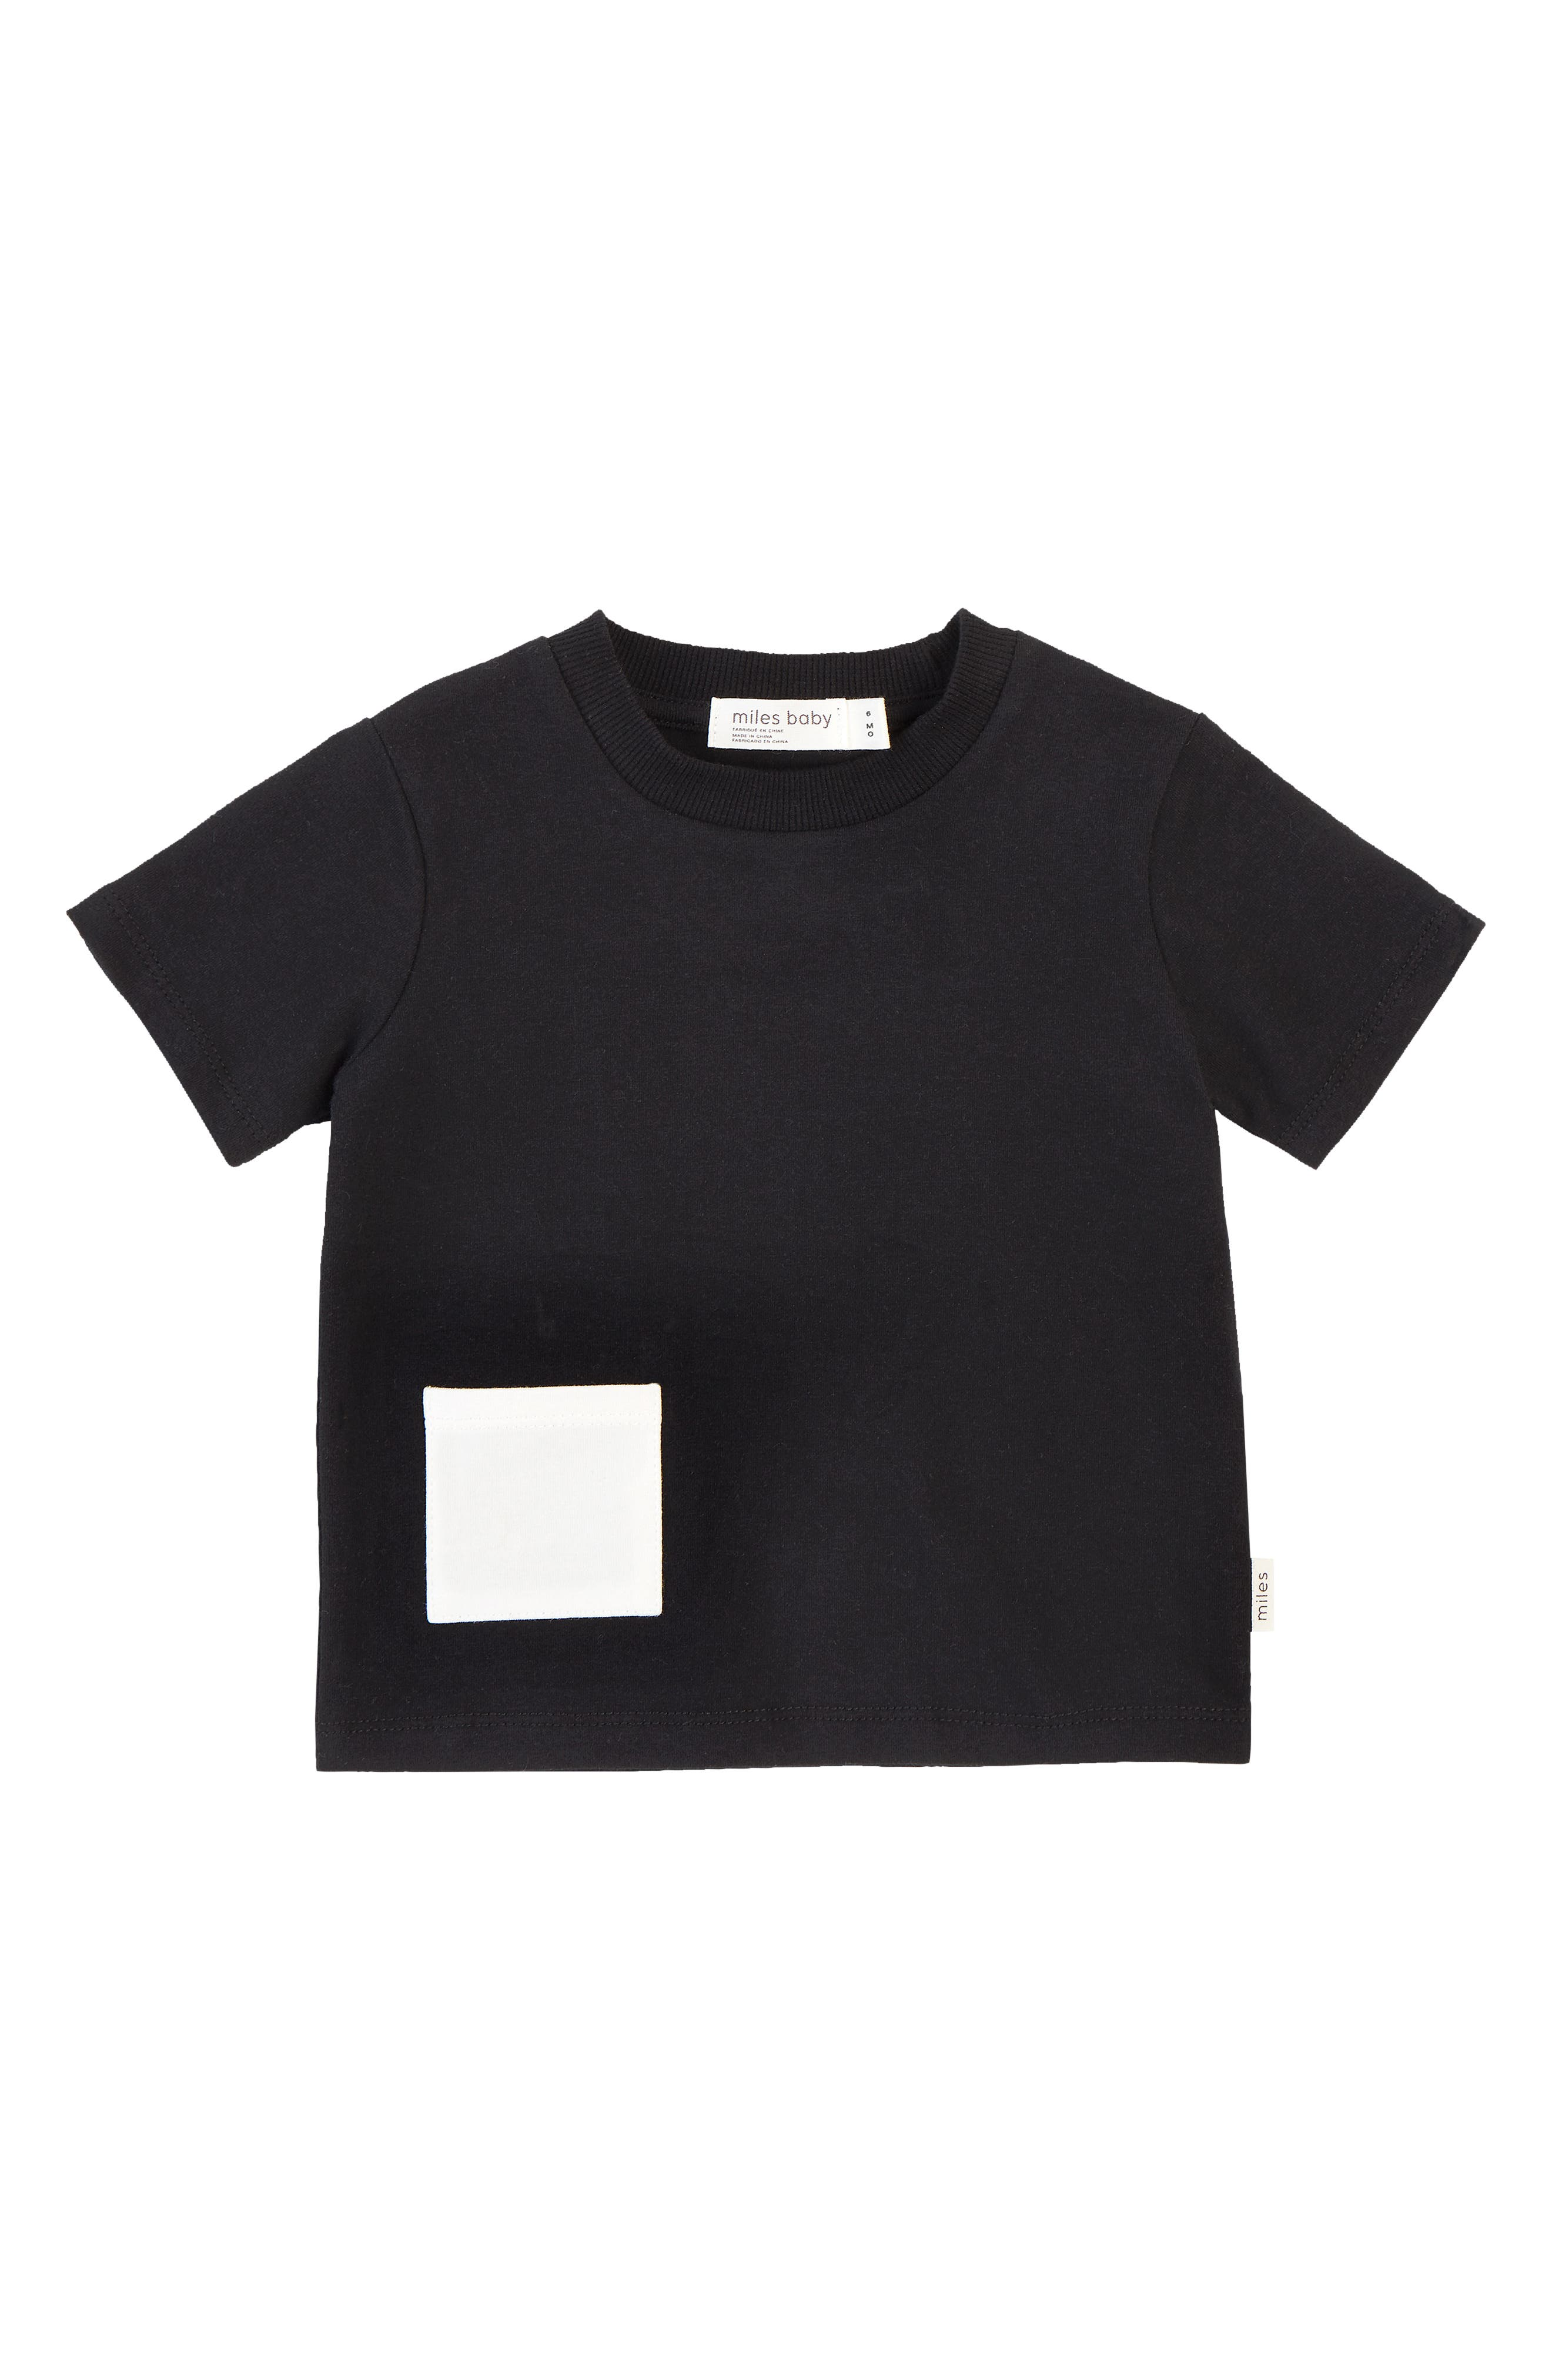 This classic crewneck featuring a contrast patch pocket is cut from soft, stretchy organic cotton and is an essential building block to any great wardrobe. Style Name: Miles Baby Pocket T-Shirt (Toddler & Little Boy). Style Number: 6004562. Available in stores.